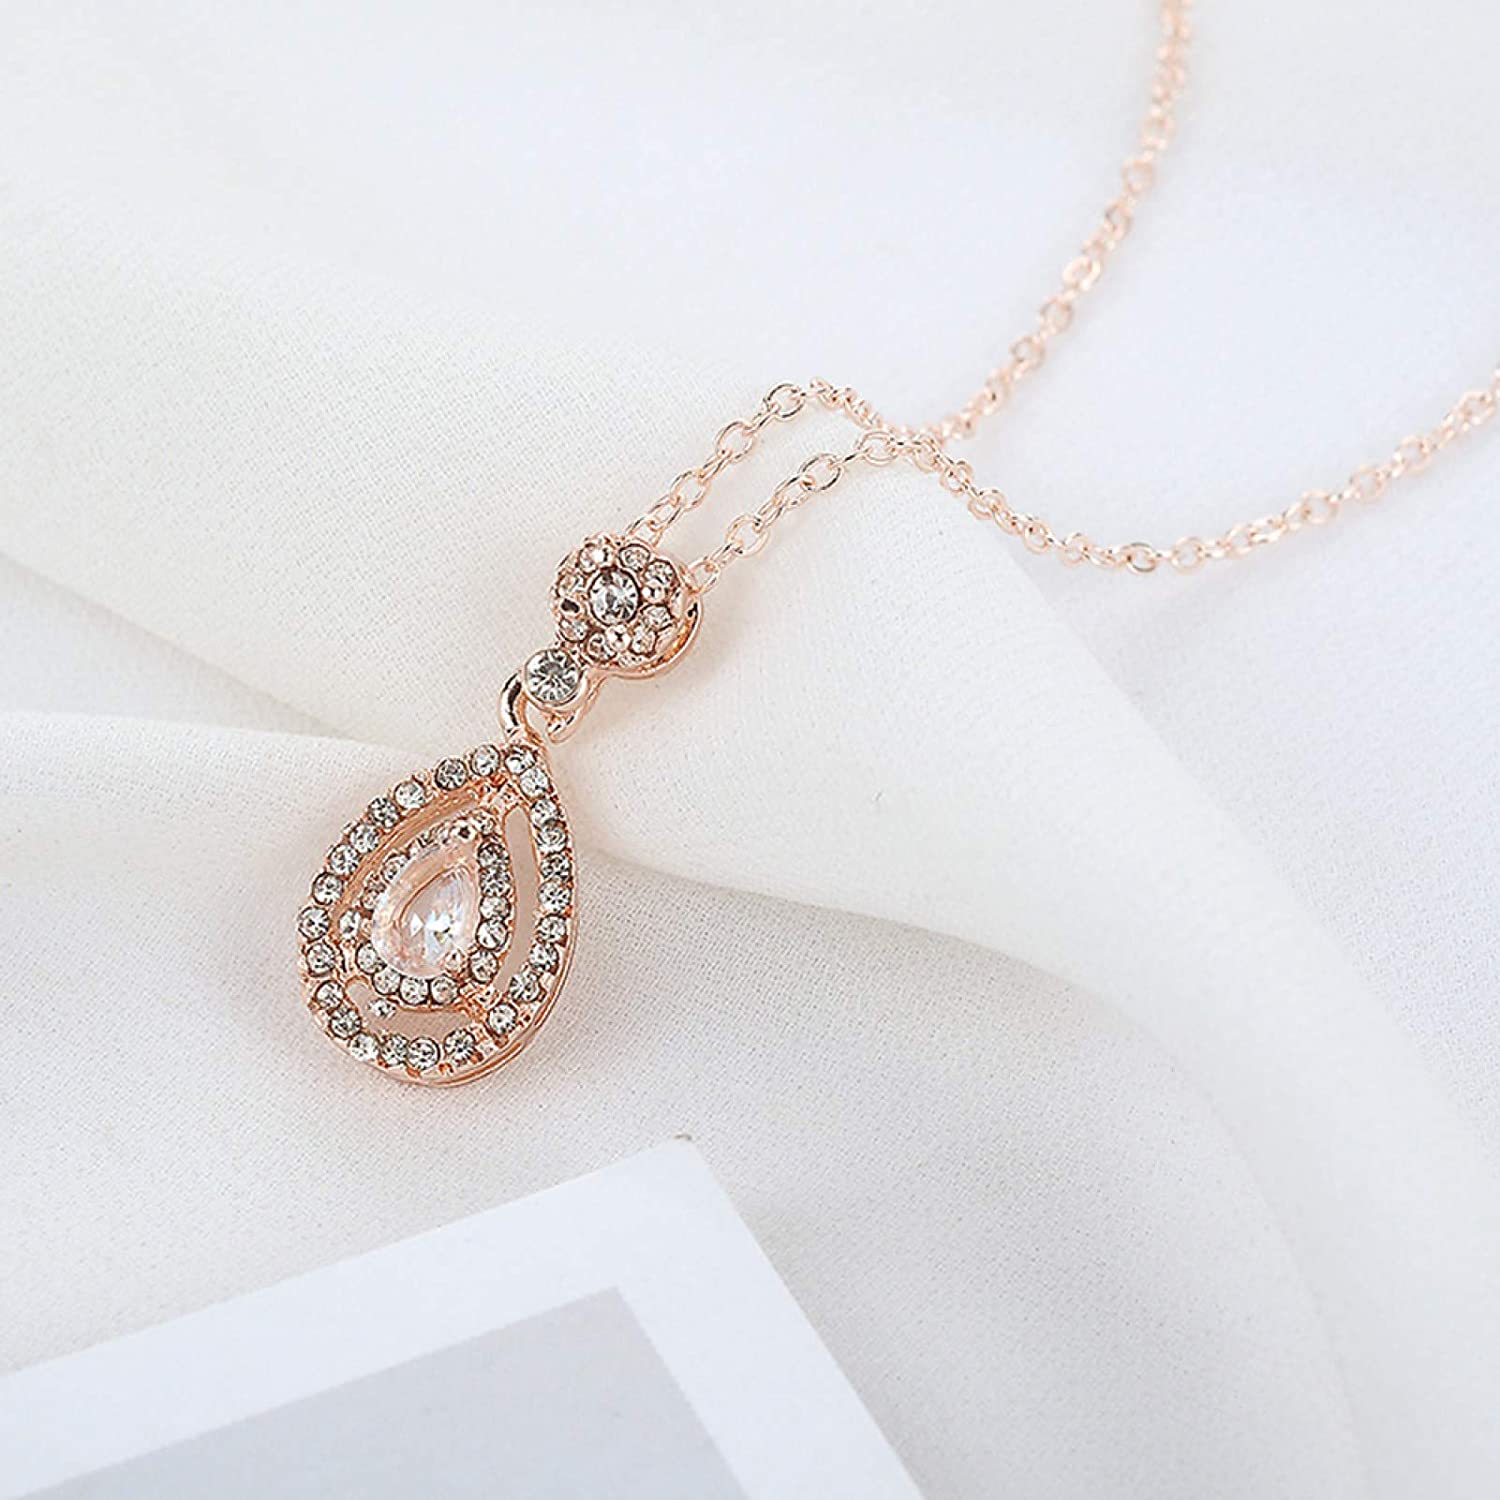 Necklaces for Women,Women Creative Rhinestone Decor Charm Water Drop Shaped Necklace Jewelry Gift Jewelry Gifts For Daughter/Her/Girls/Wife/Mom/Girlfriend